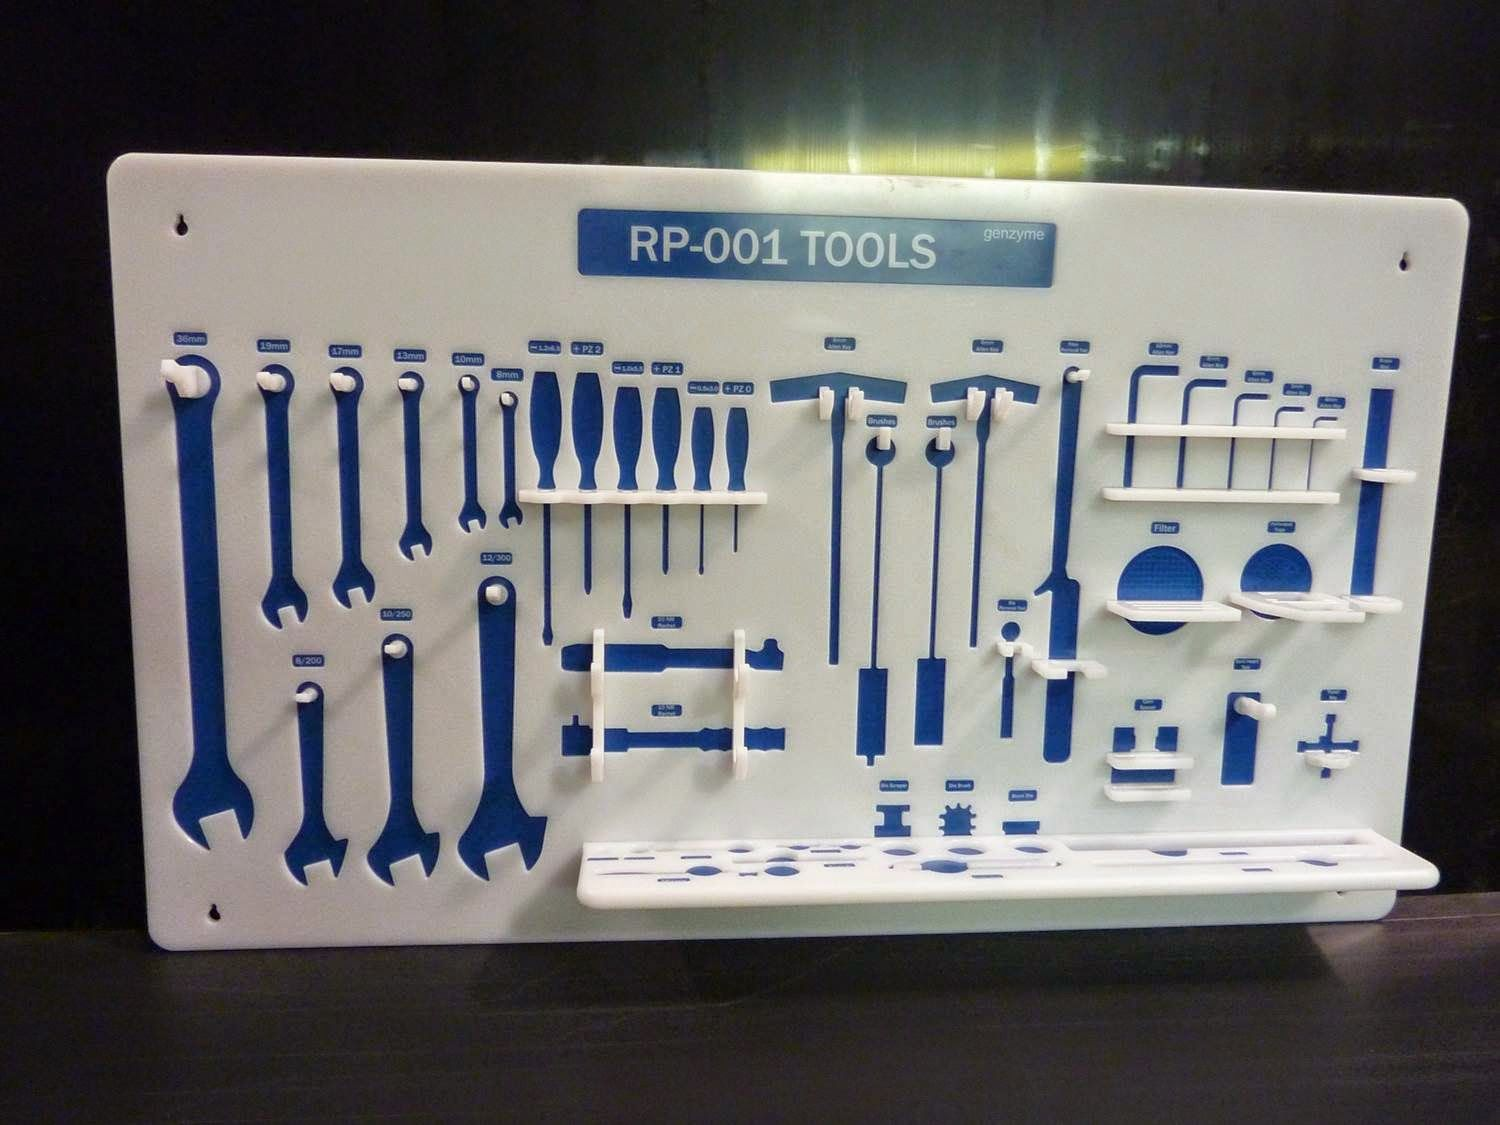 AccuDrawer Tool Control Solution